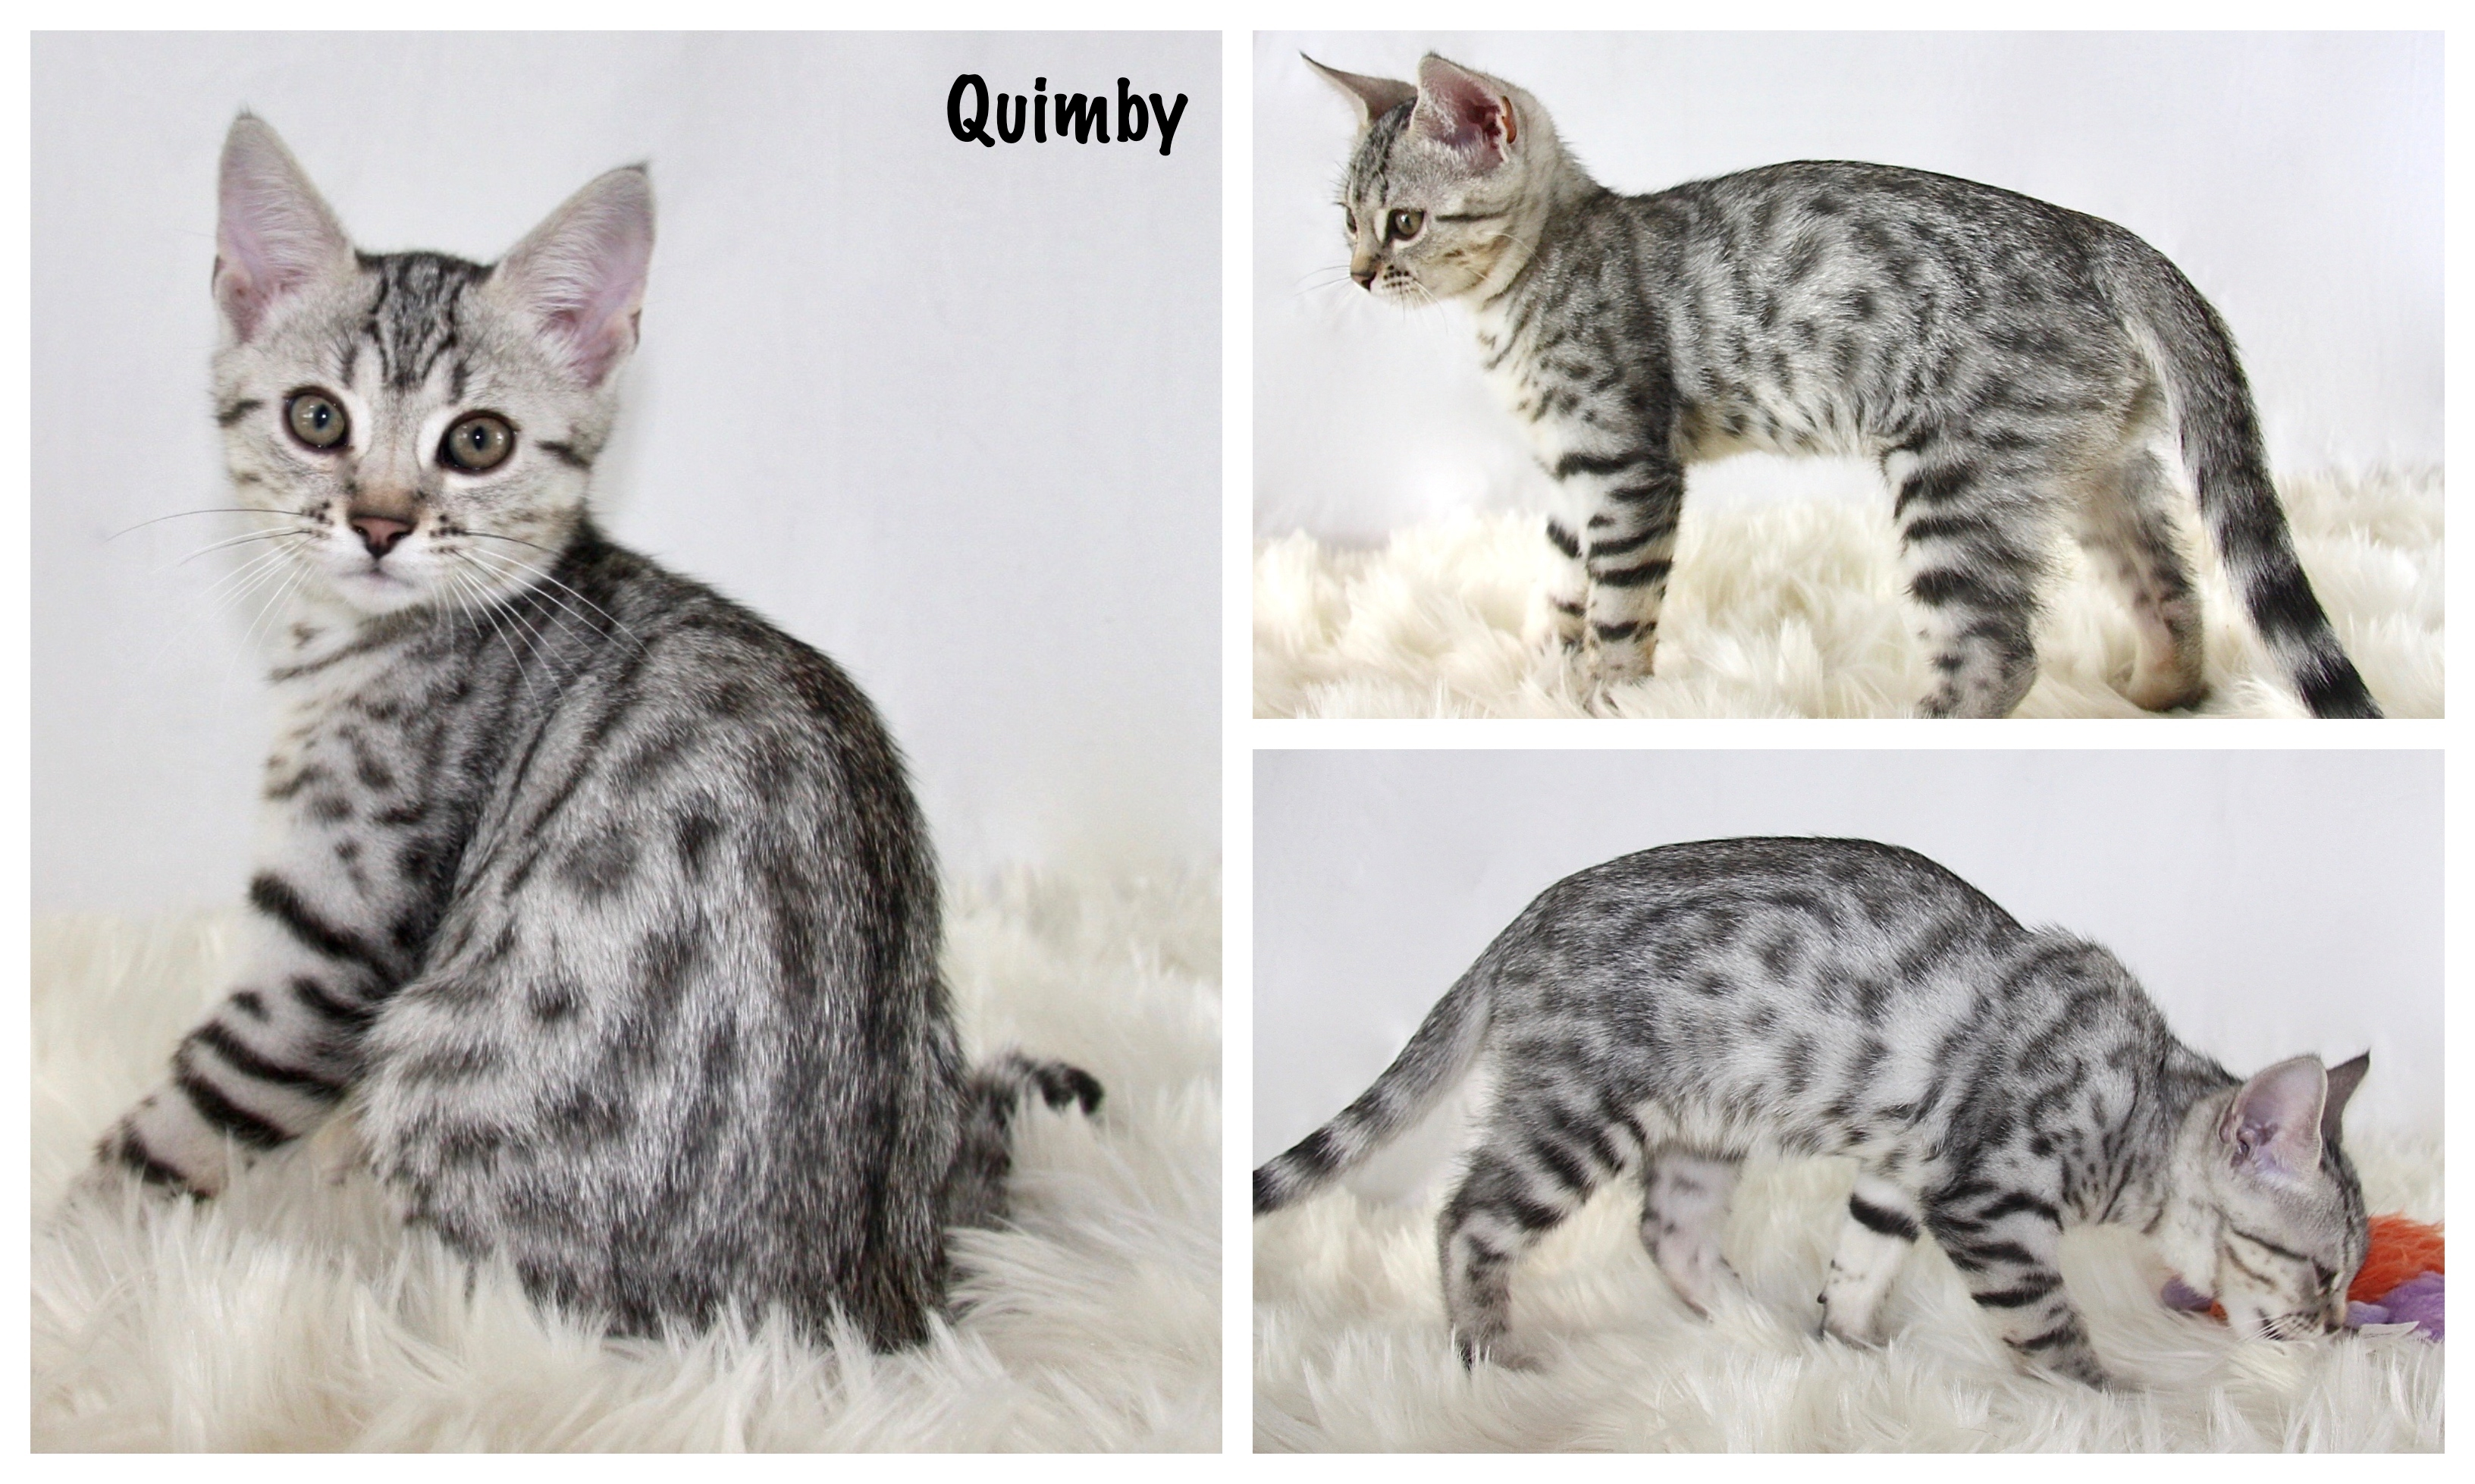 Quimby 12 weeks